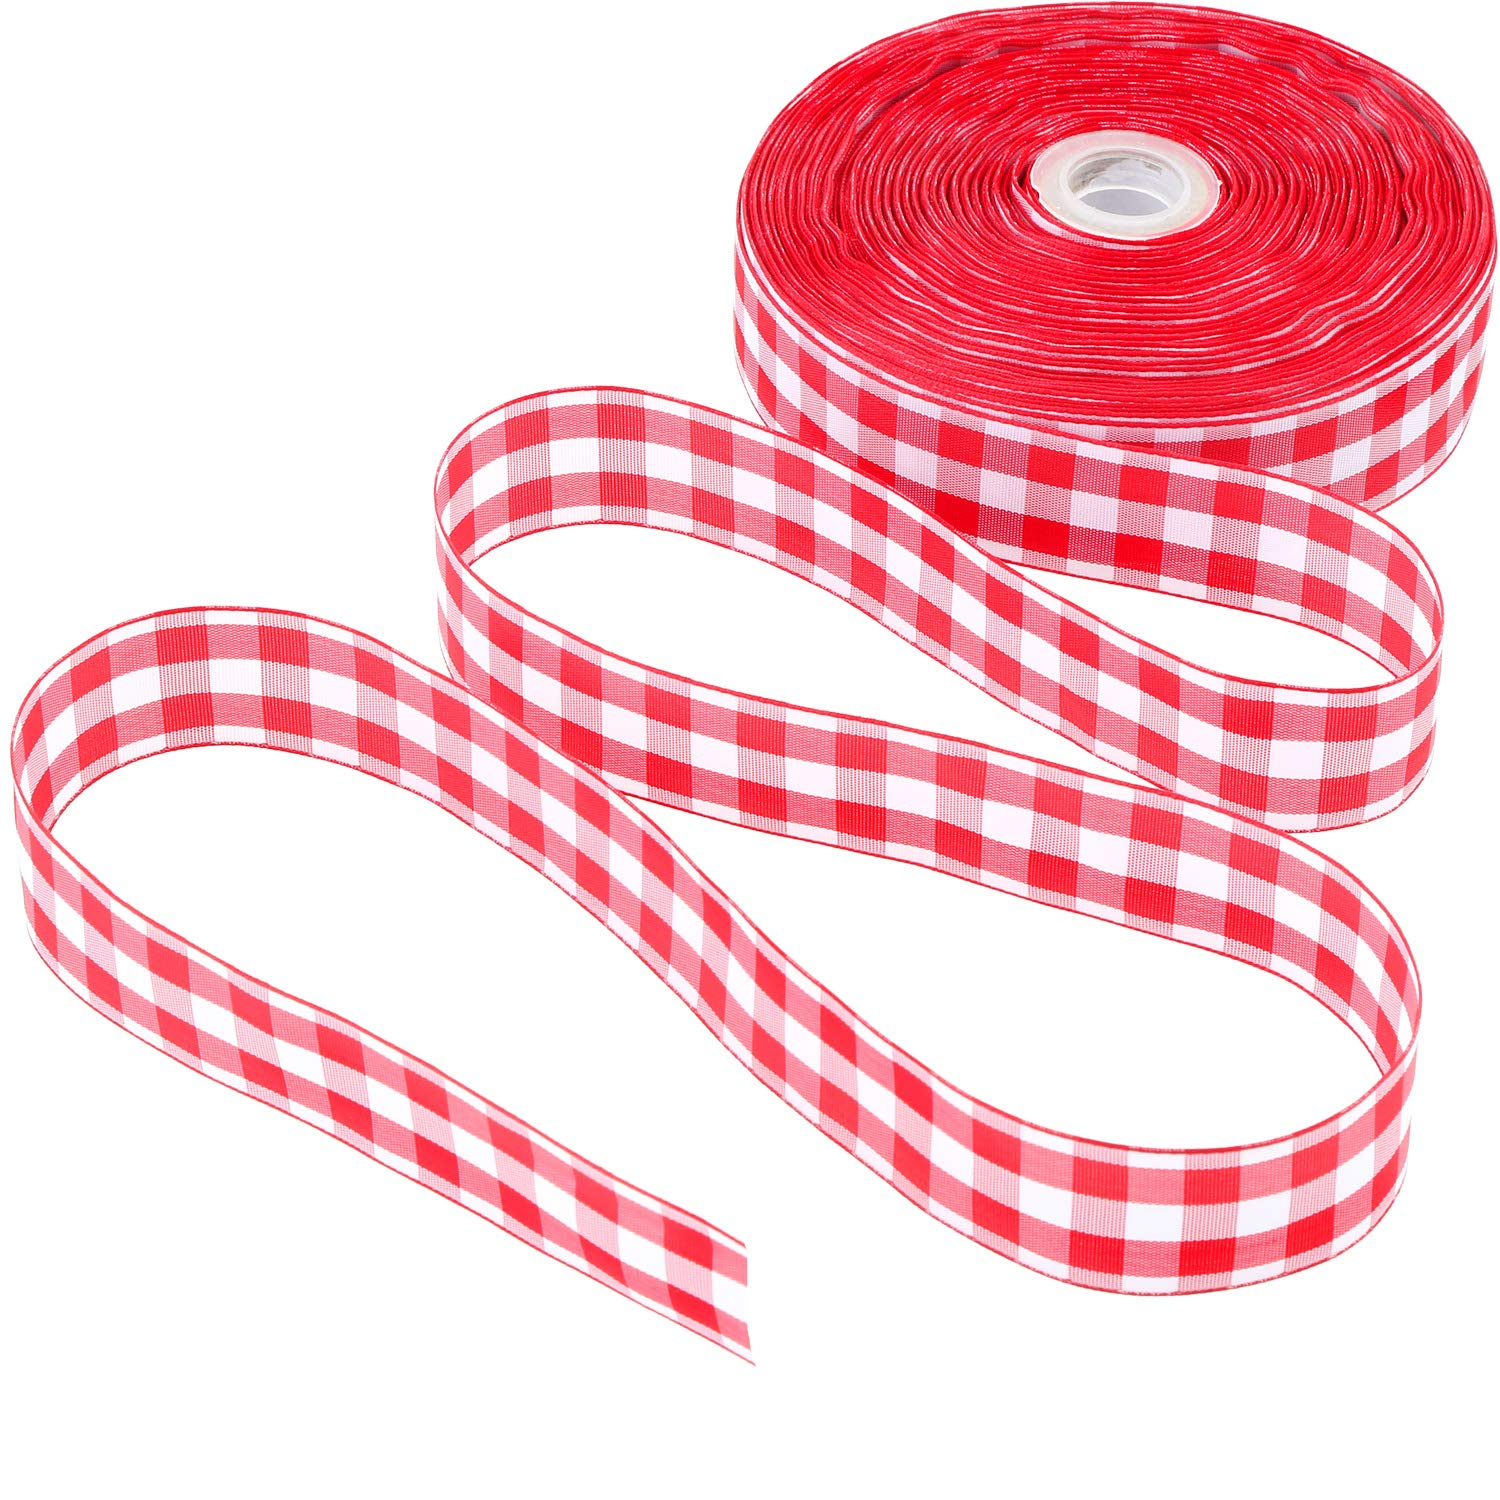 Black and White, 10 Meter Long 6.3 cm in Width Plaid Burlap Ribbon Gingham Wrapping Ribbon with Spool for Christmas Decoration Gift Wrapping Party Decoration